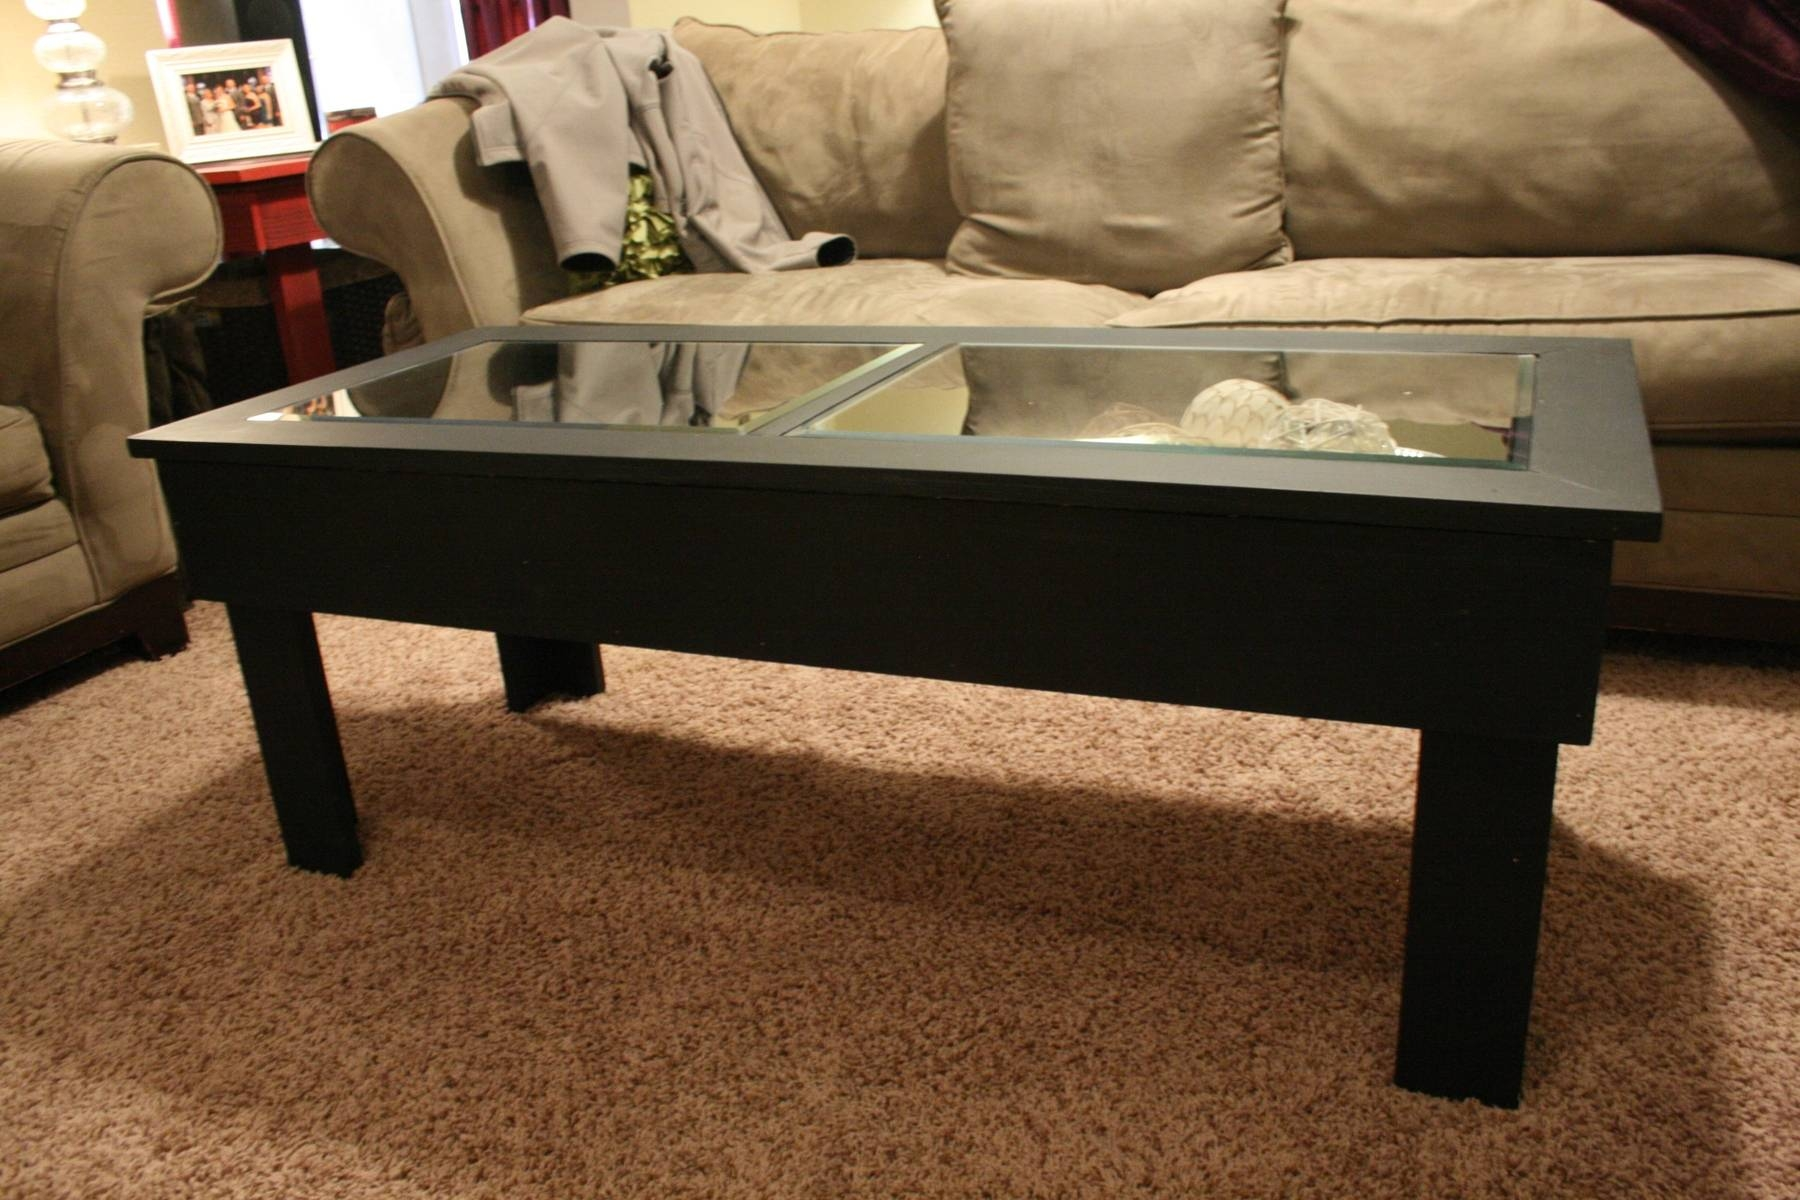 Glass Coffee Tables: Charming Dark Wood Coffee Table With Glass regarding Solid Glass Coffee Table (Image 6 of 15)